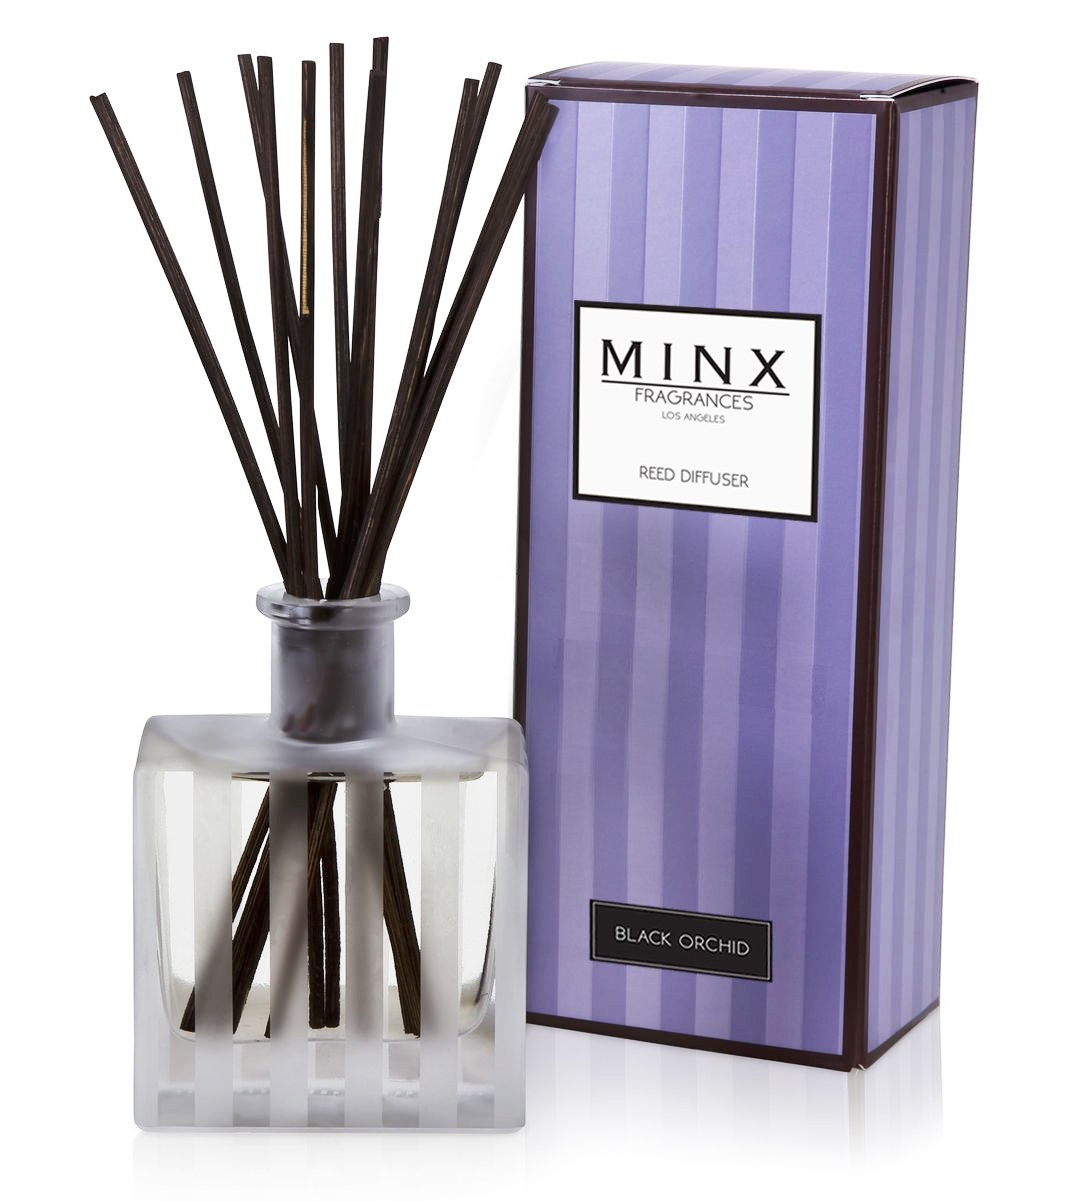 Aromatherapy Oil Reed Diffuser Gift Set MINX Fragrances (BLACK ORCHID)